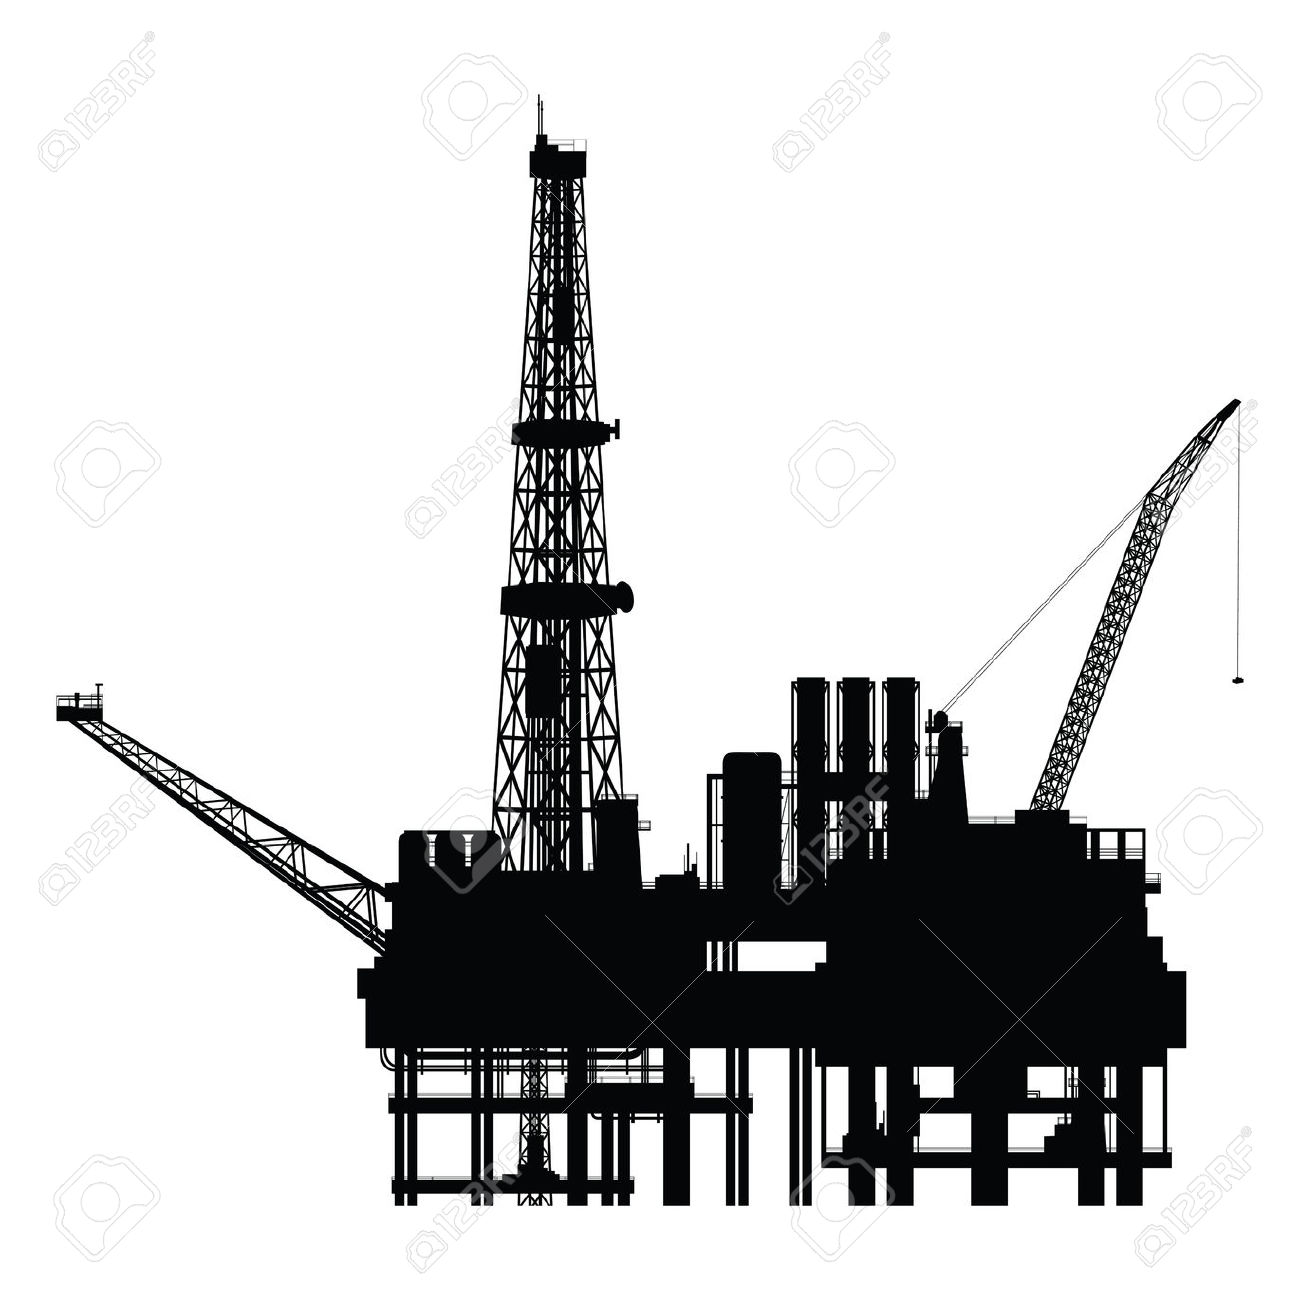 Oil rig hd clipart.